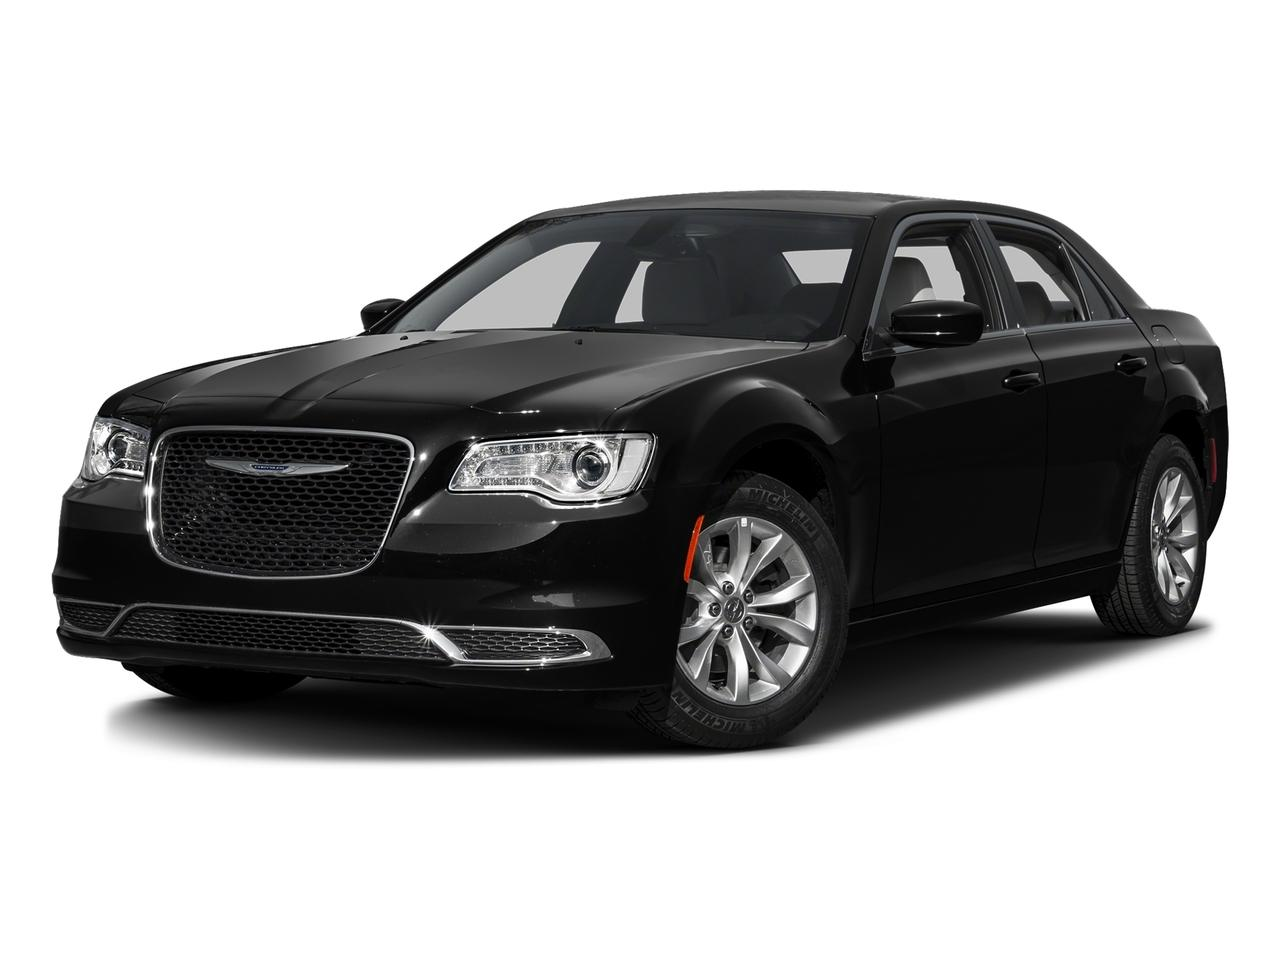 2016 Chrysler 300 Vehicle Photo in Danbury, CT 06810